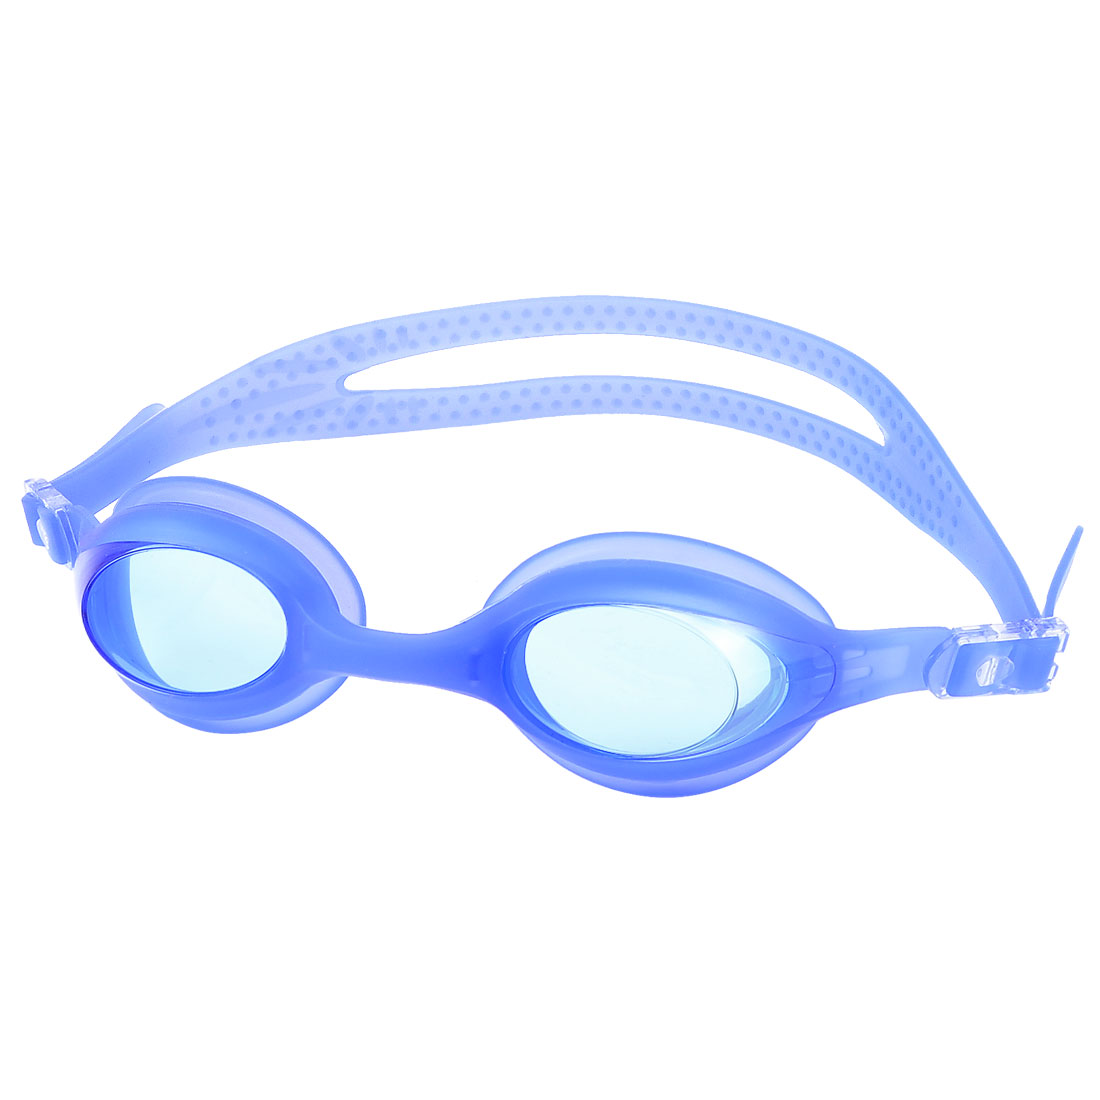 Unique Bargains Youth Adults Anti-fog Clear Lens Underwater Sports Goggles Ear Plugs For Swimming Diving by Unique-Bargains